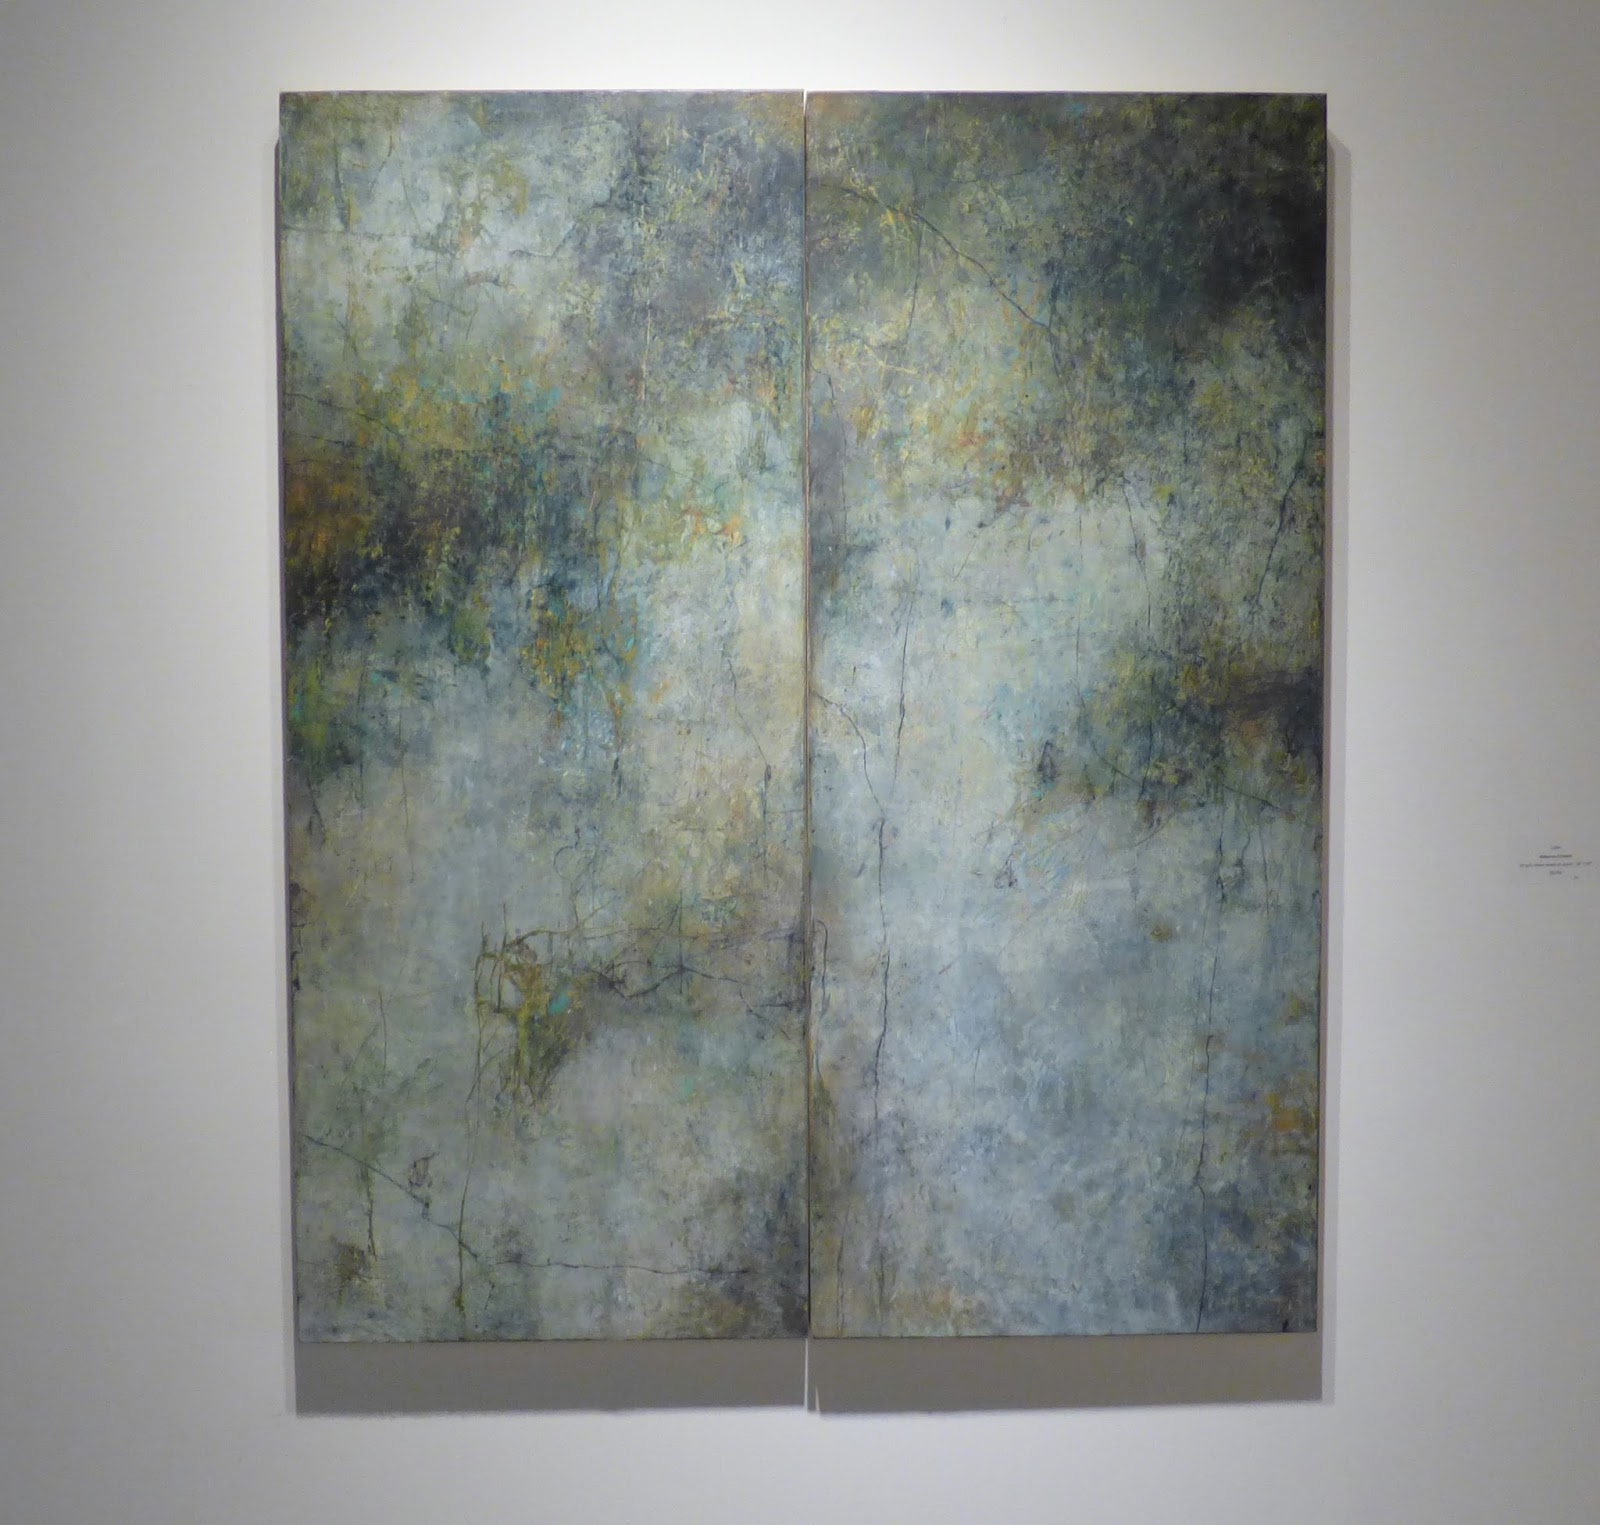 Rebecca crowell march 2016 for Wax landscape